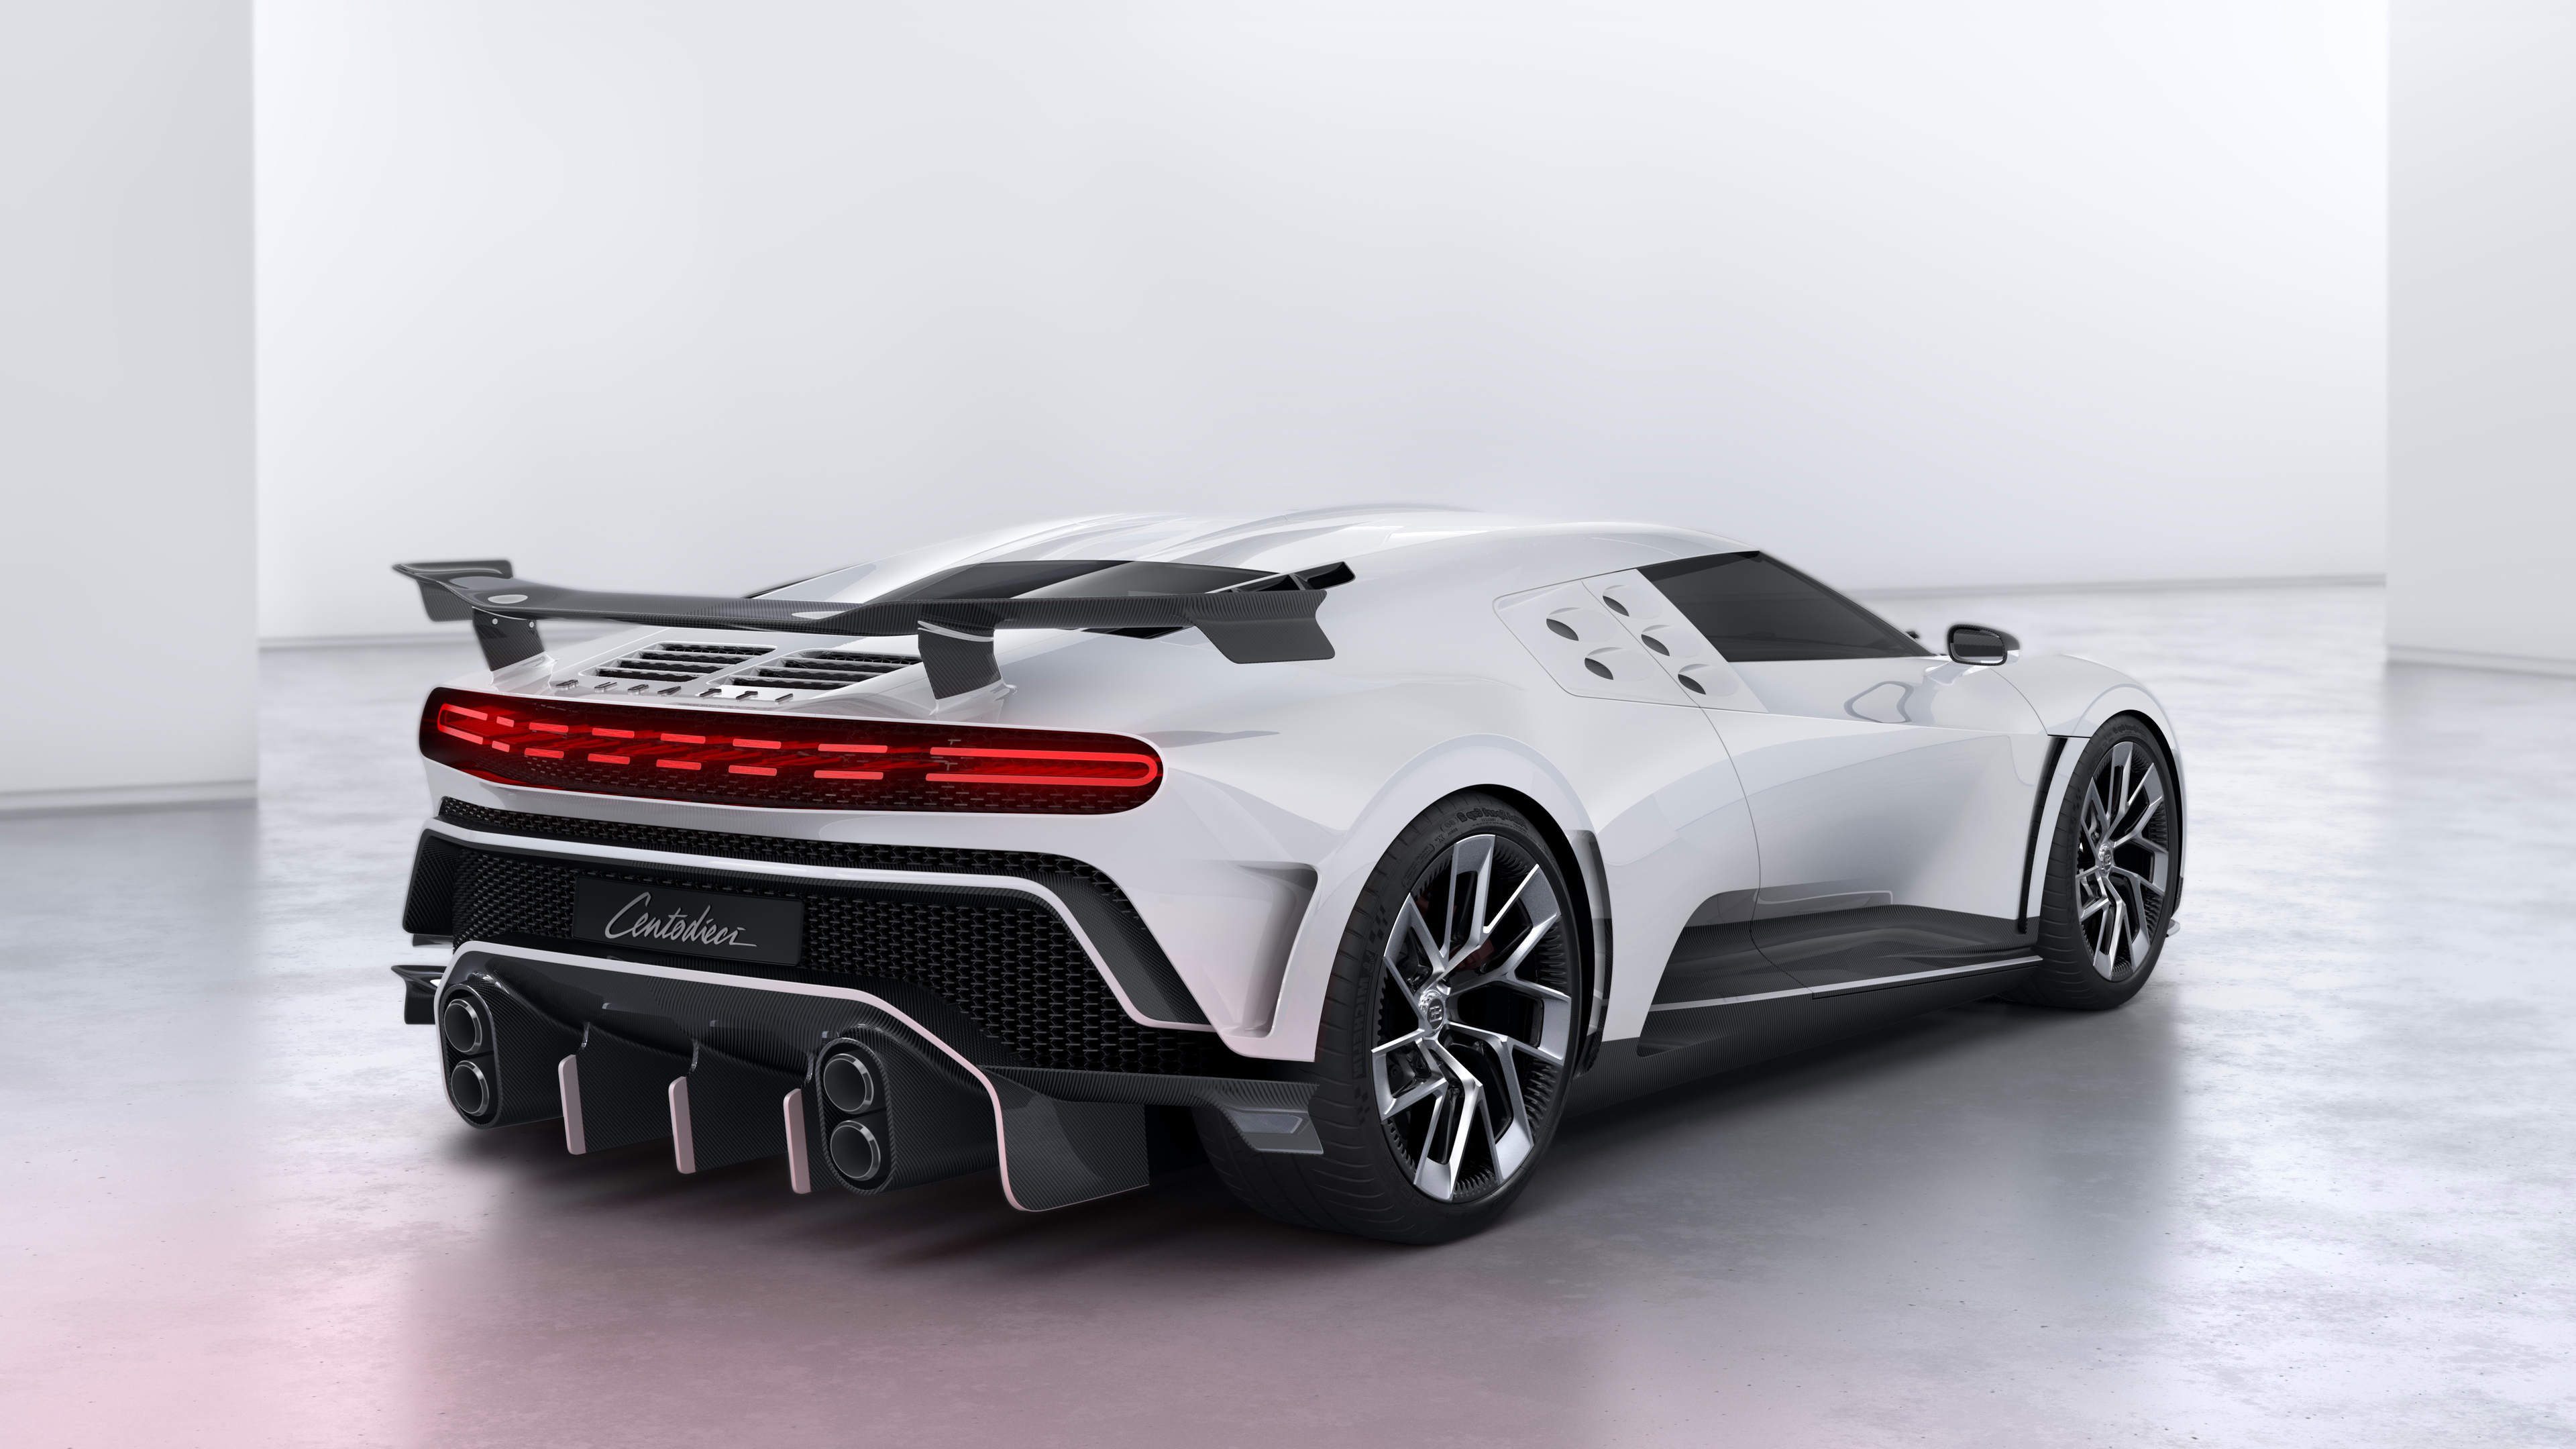 rear bugatti centodieci 2020 1569188904 - Rear Bugatti Centodieci 2020 - hd-wallpapers, cars wallpapers, bugatti centodieci wallpapers, 8k wallpapers, 5k wallpapers, 4k-wallpapers, 2020 cars wallpapers